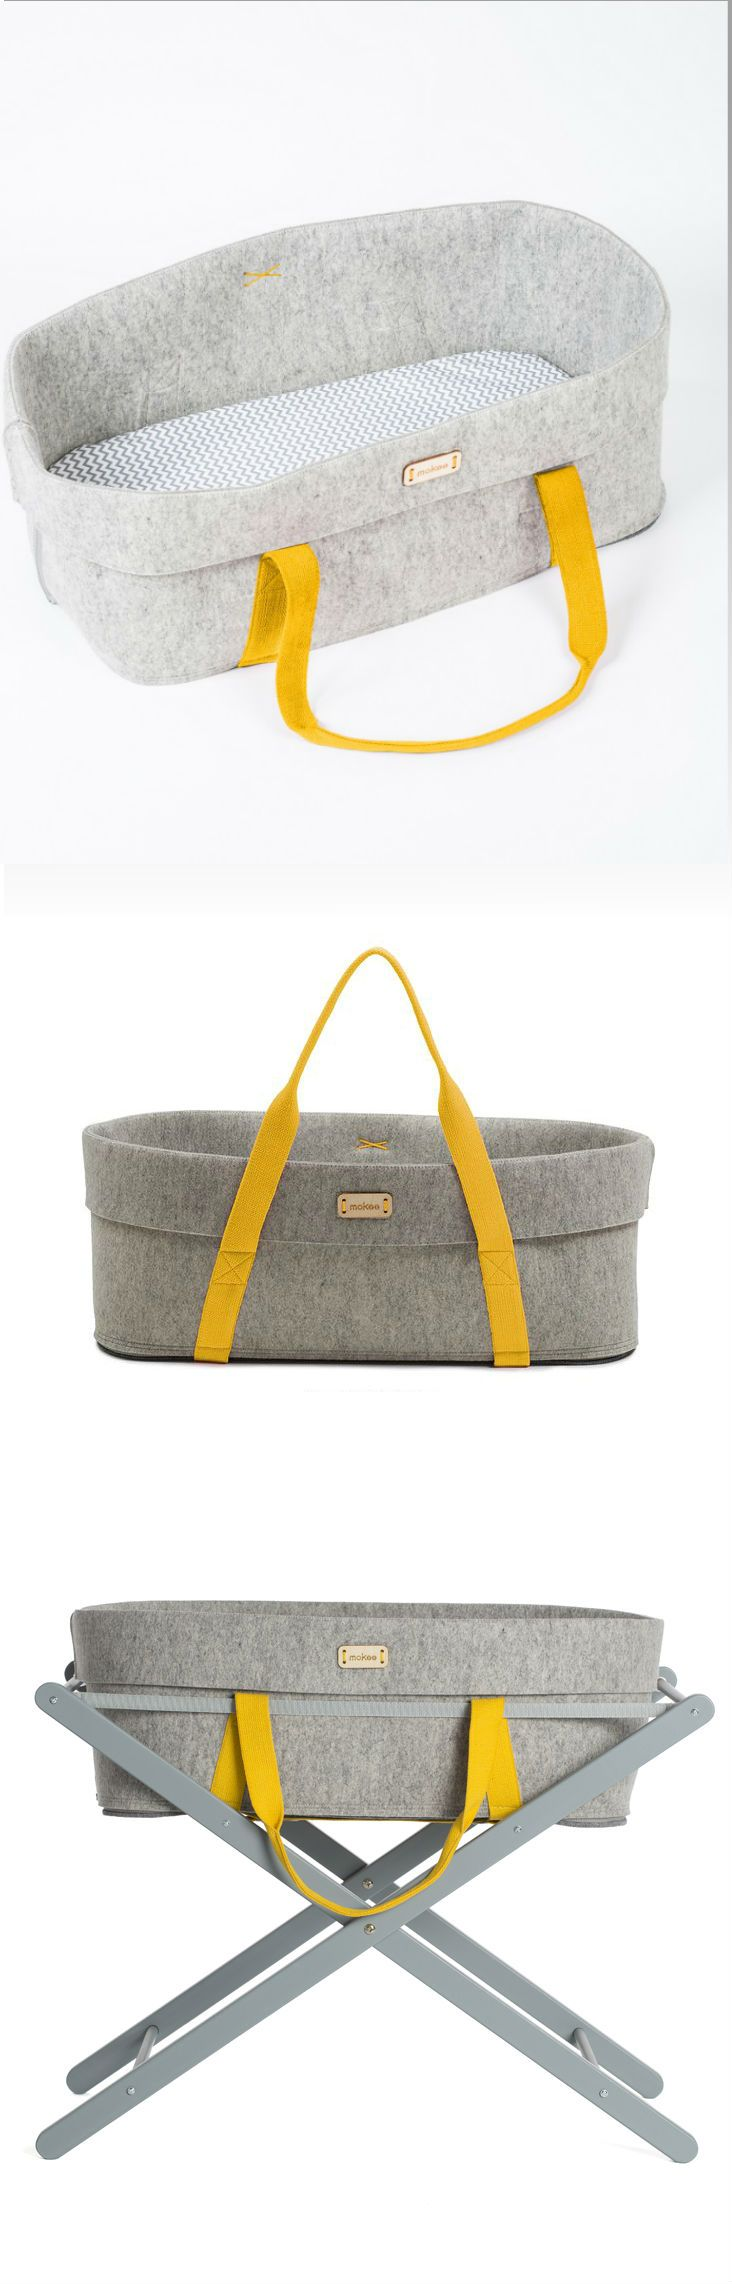 Moses basket by moKee, wool felt bassinet for your nursery #woolnest #nursery #bassinet